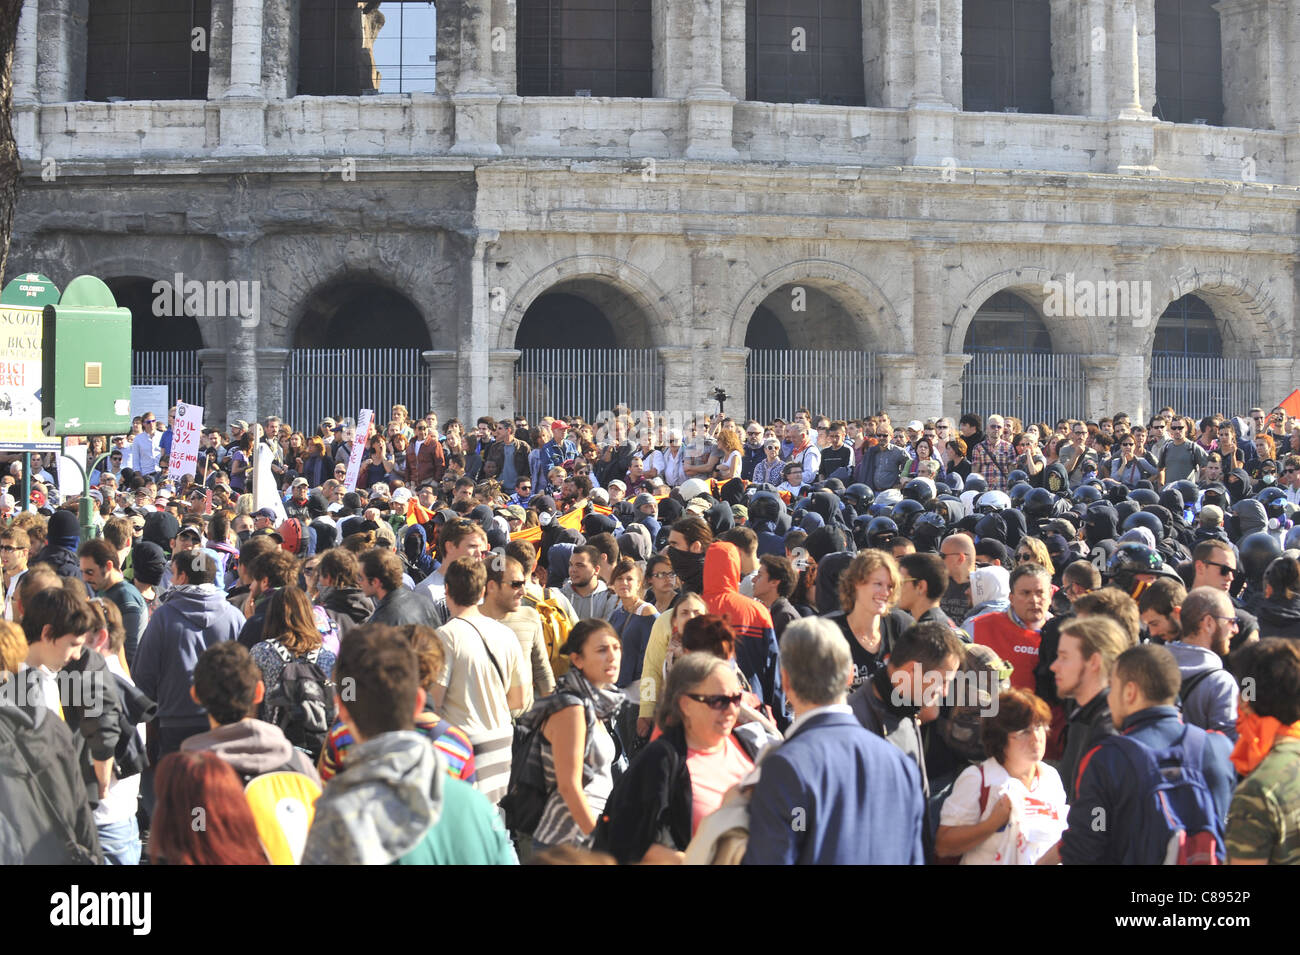 Black Bloc under the Colosseum. Indignants Protest in Rome turns violent - Stock Image